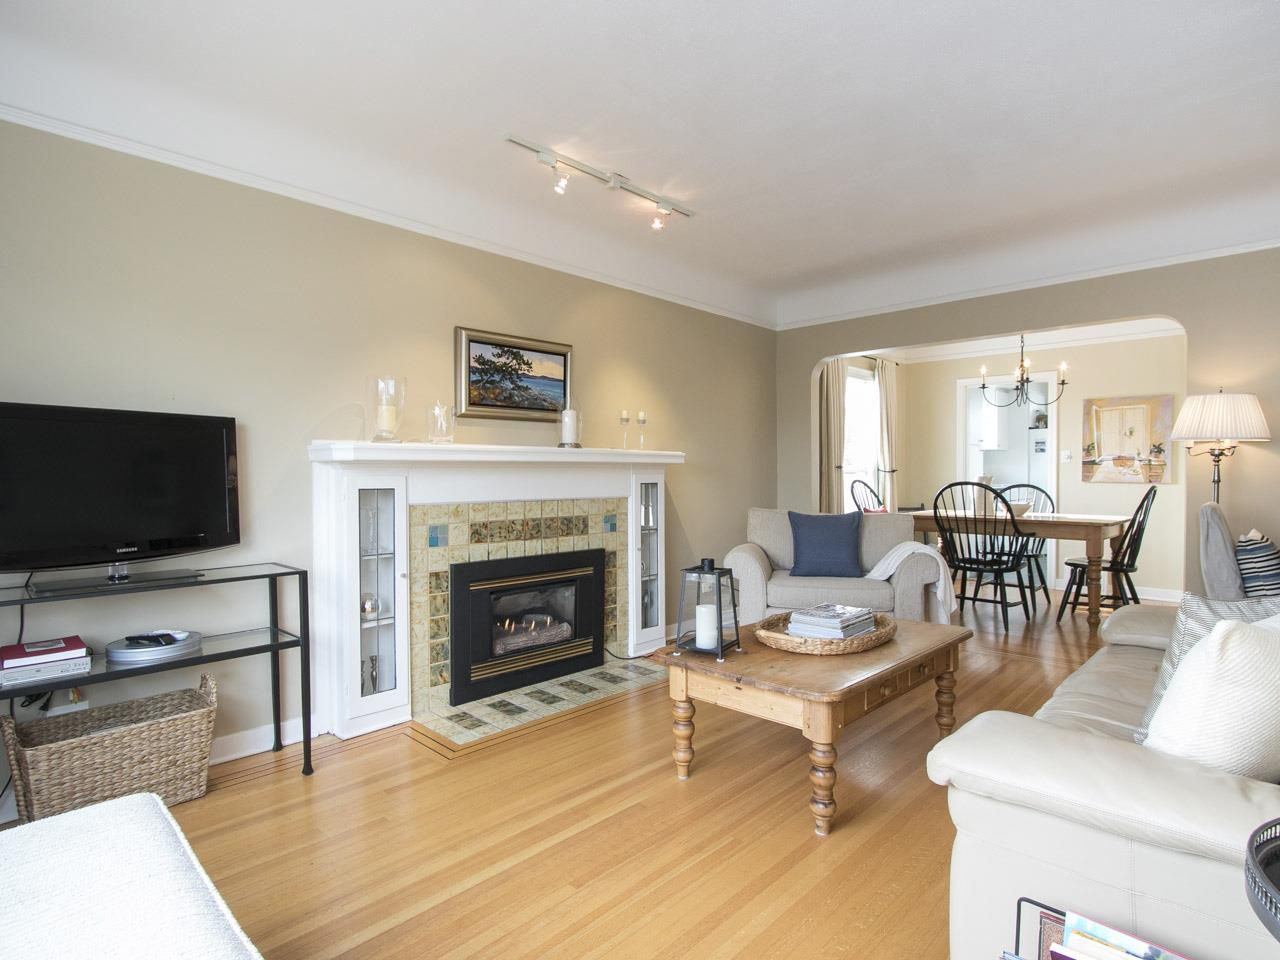 Photo 2: 5681 ONTARIO Street in Vancouver: Cambie House for sale (Vancouver West)  : MLS® # R2135614